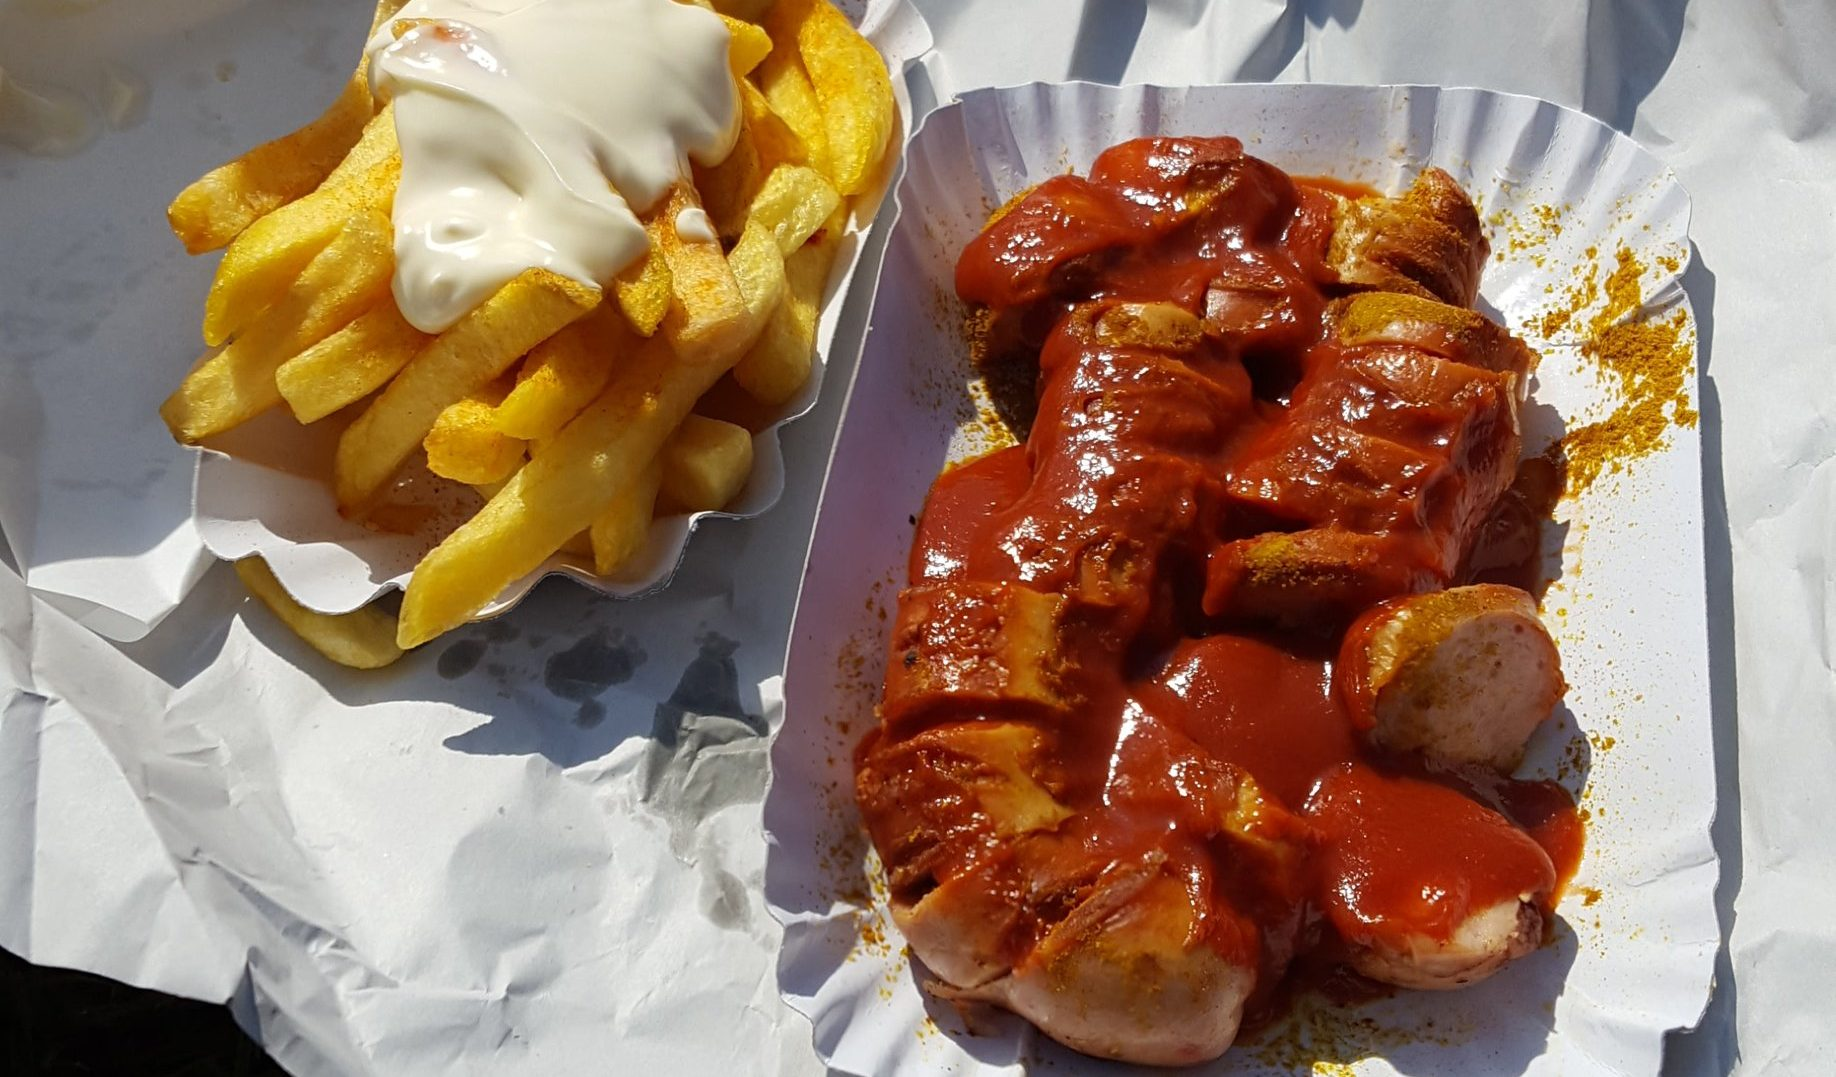 Currywurst mit Pommes, traditional Berlin curry sausage with fries from Curry 61 in Mitte